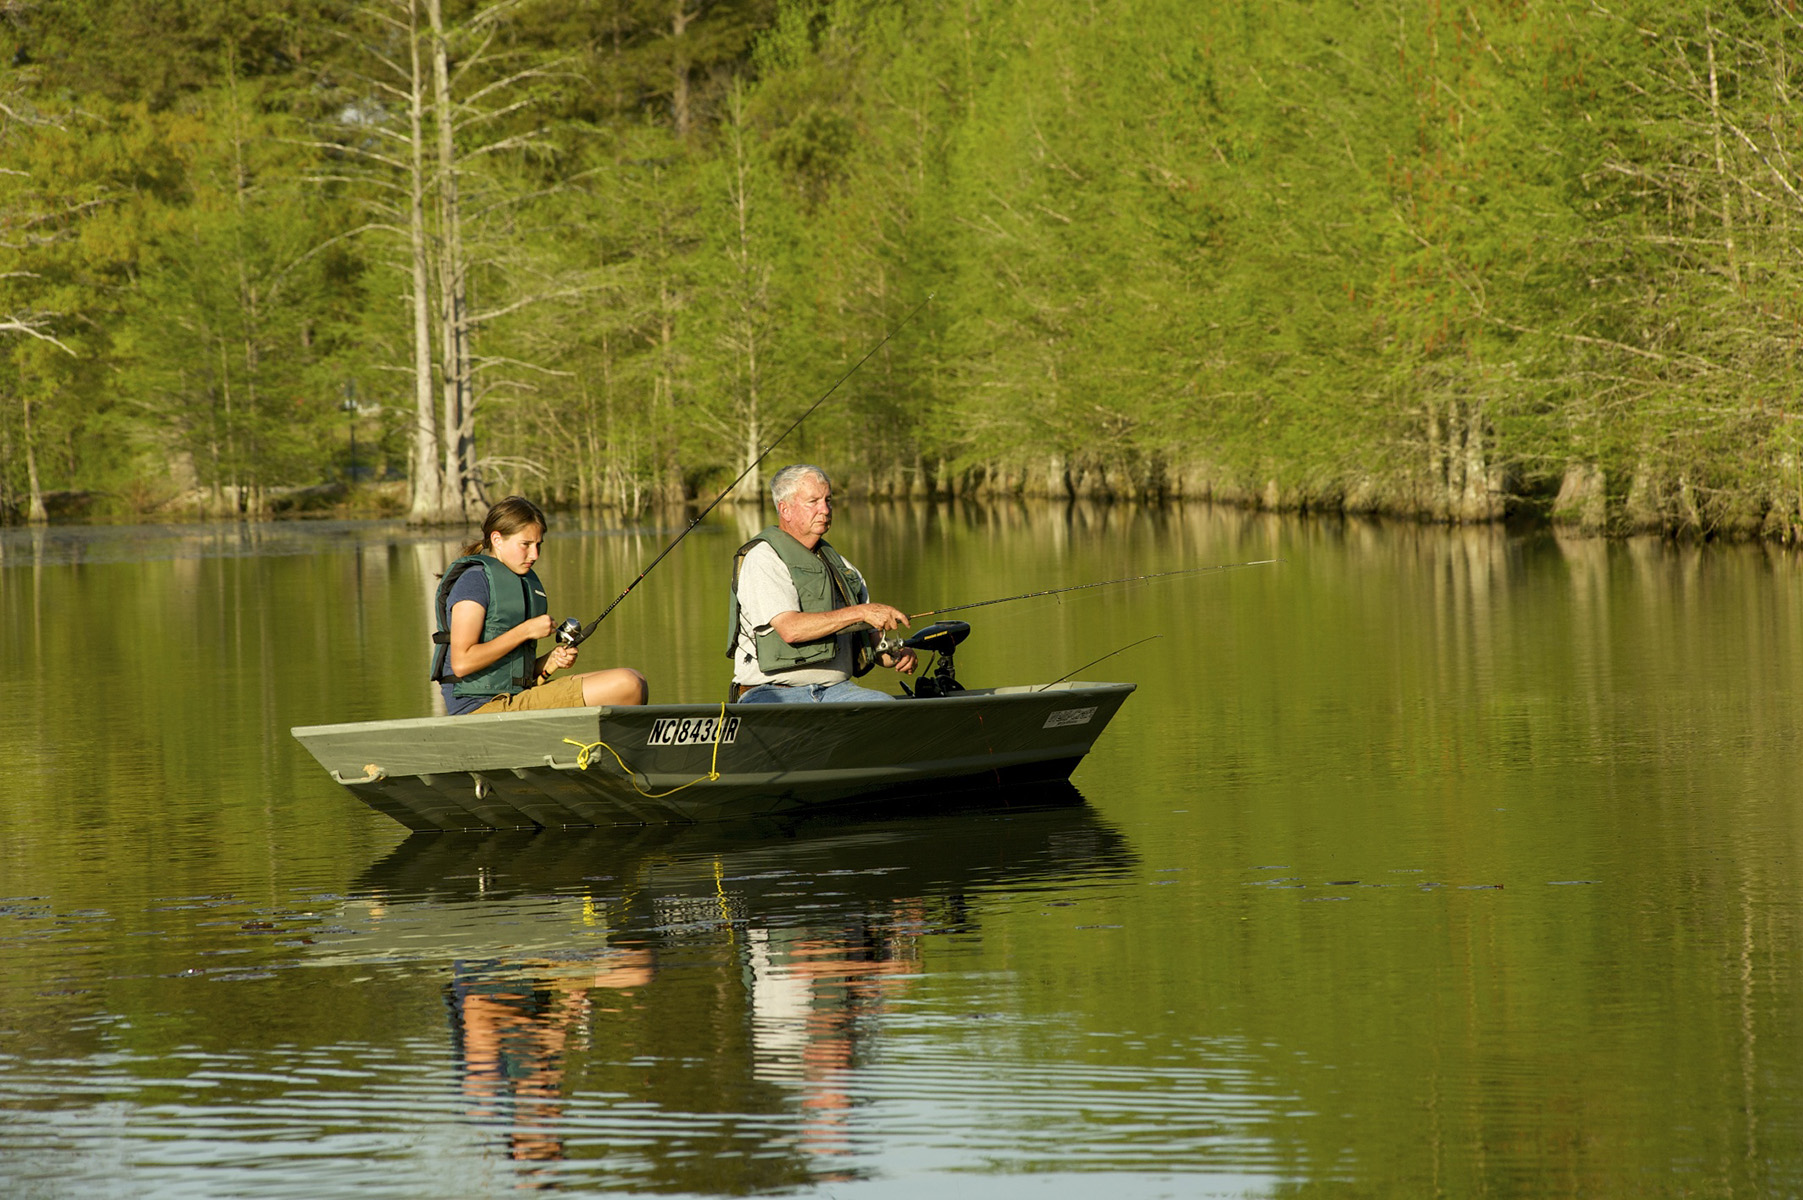 No license required on july 4 free fishing day in north for Nc wildlife fishing license